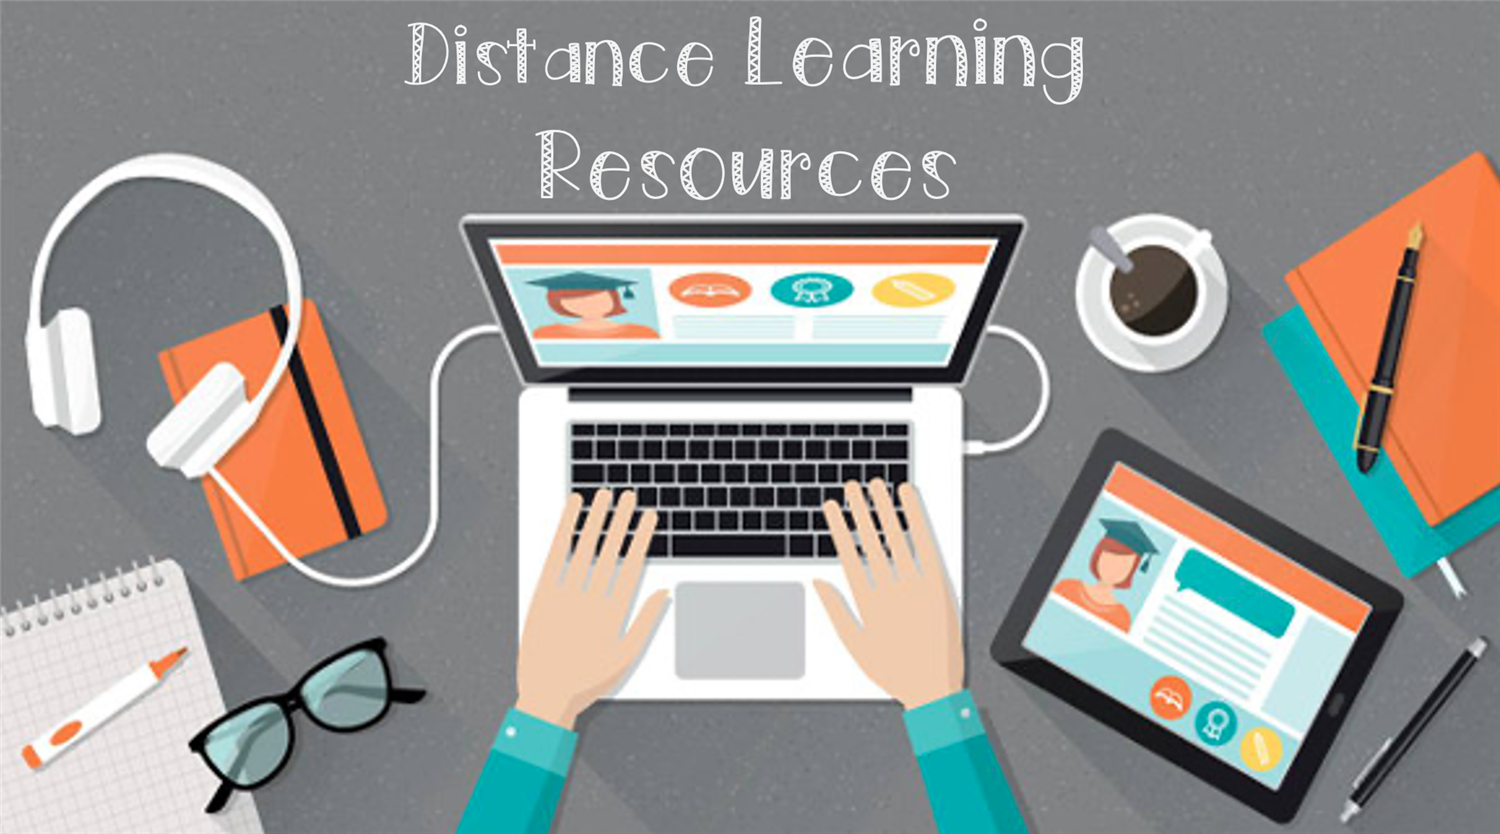 Distance Learning Resources